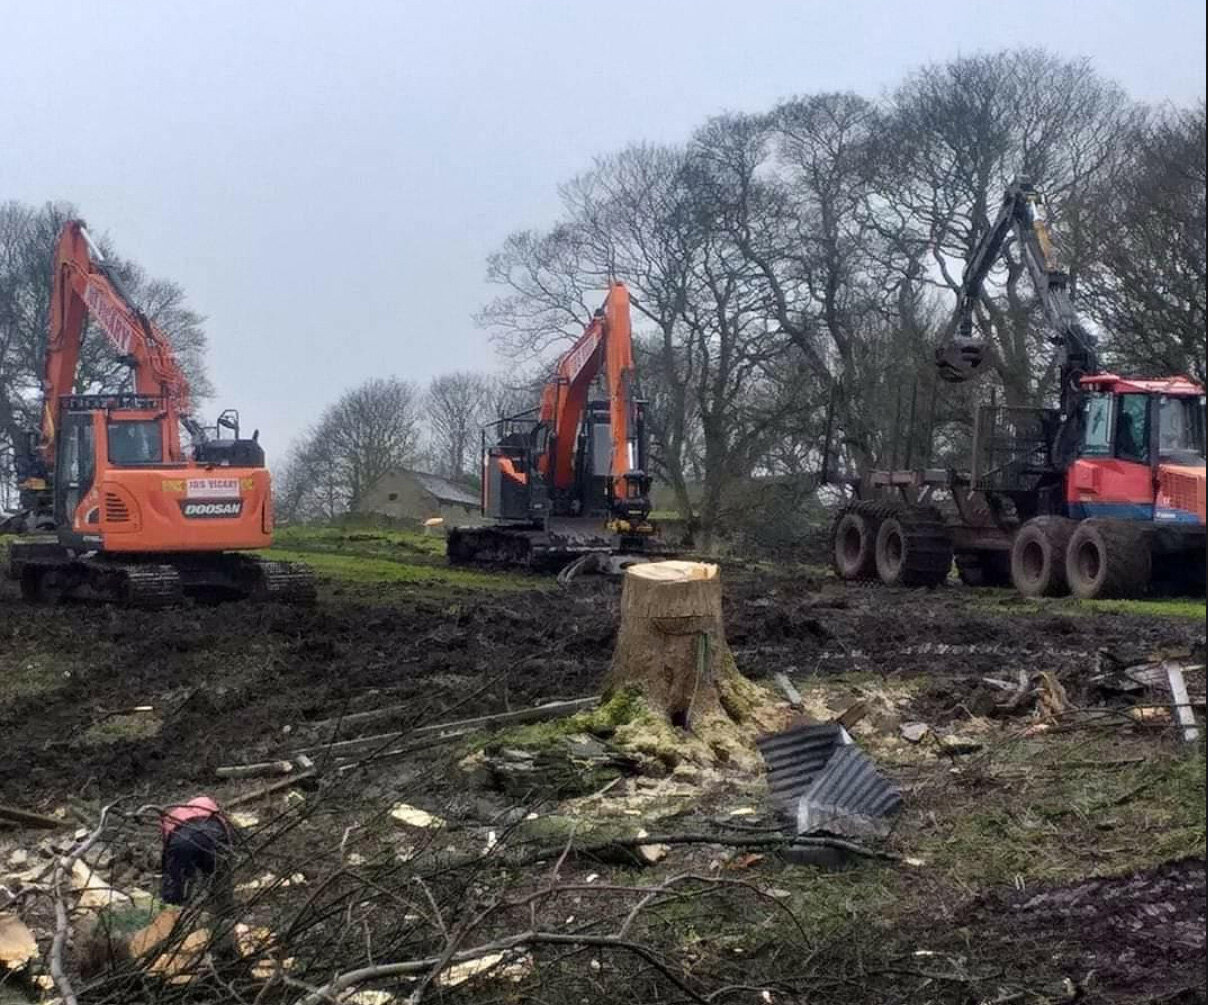 Stump Removal Specialists - We offer a range of tree services in Sheffield, but one of the more challenging ones is stump removal. Removing the stump comes as standard with our tree removal service. Please see below for our full range of services offered by our team.